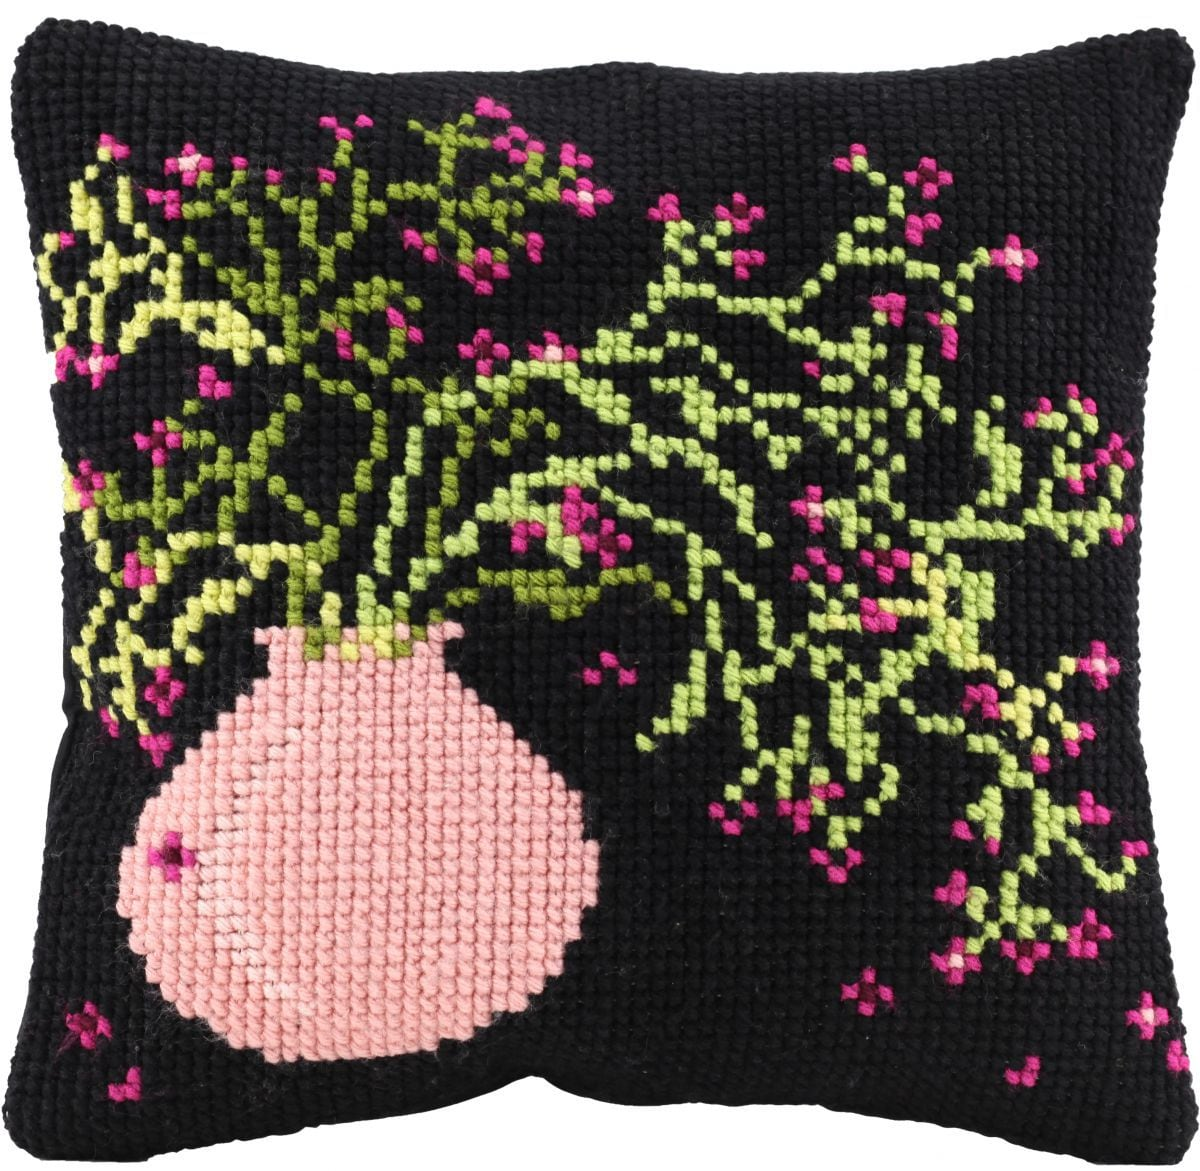 cross stitch cushion vase with flowers printed